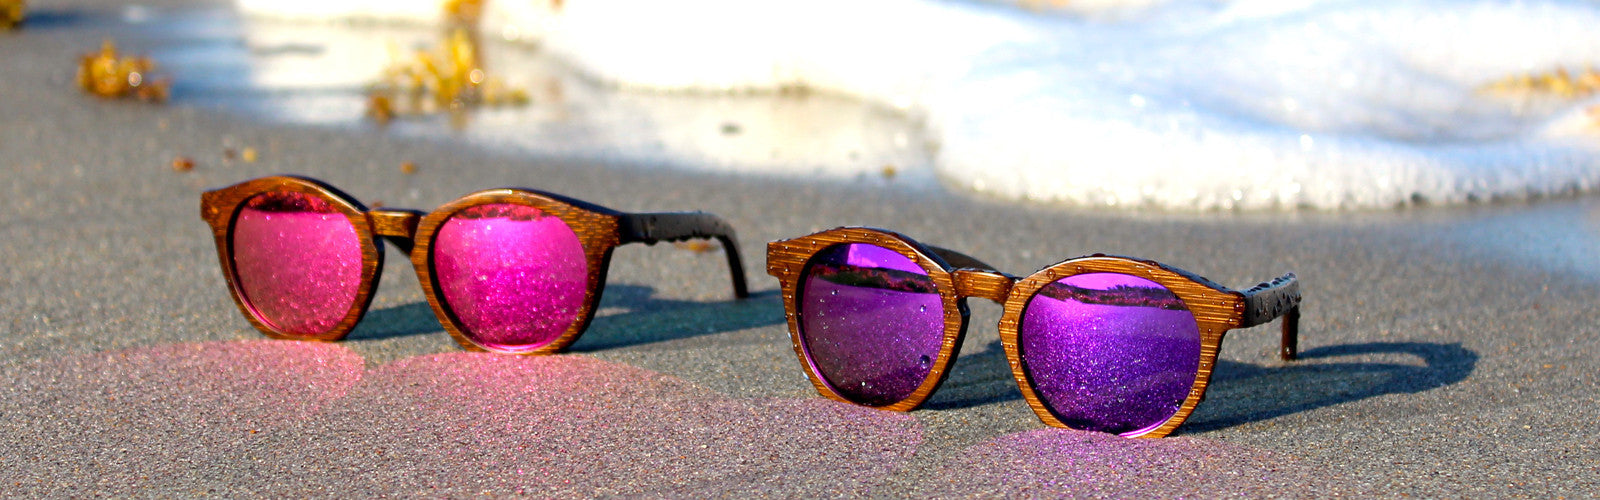 hazzies-beach-wear-woody-frames-bamboo-sunglasses